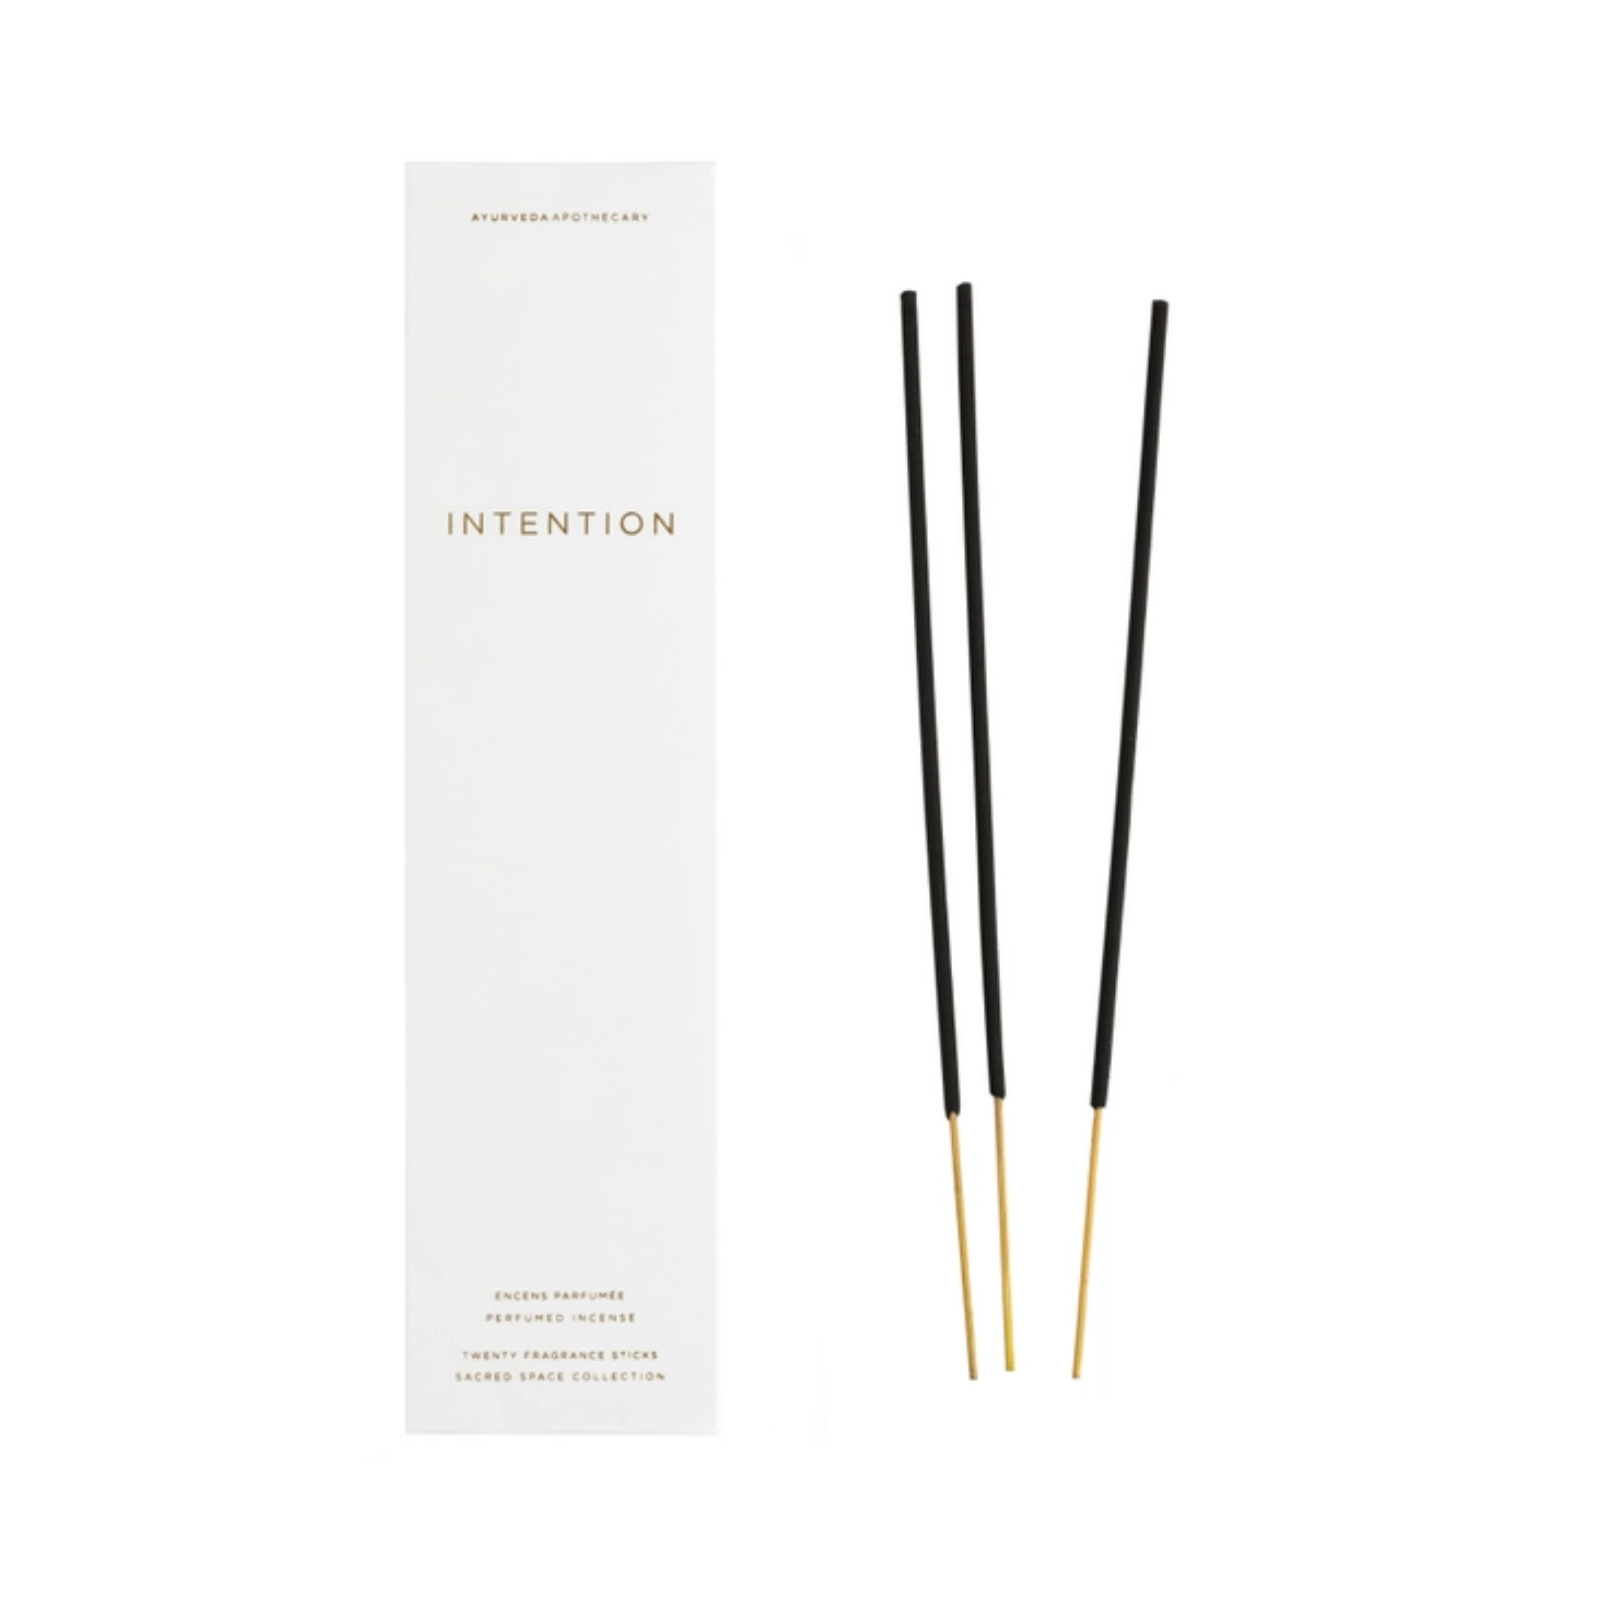 Intention incense. Product insert reads: Intention. Perfumed Incense; Twenty Fragrance sticks; Sacred Space Collection.